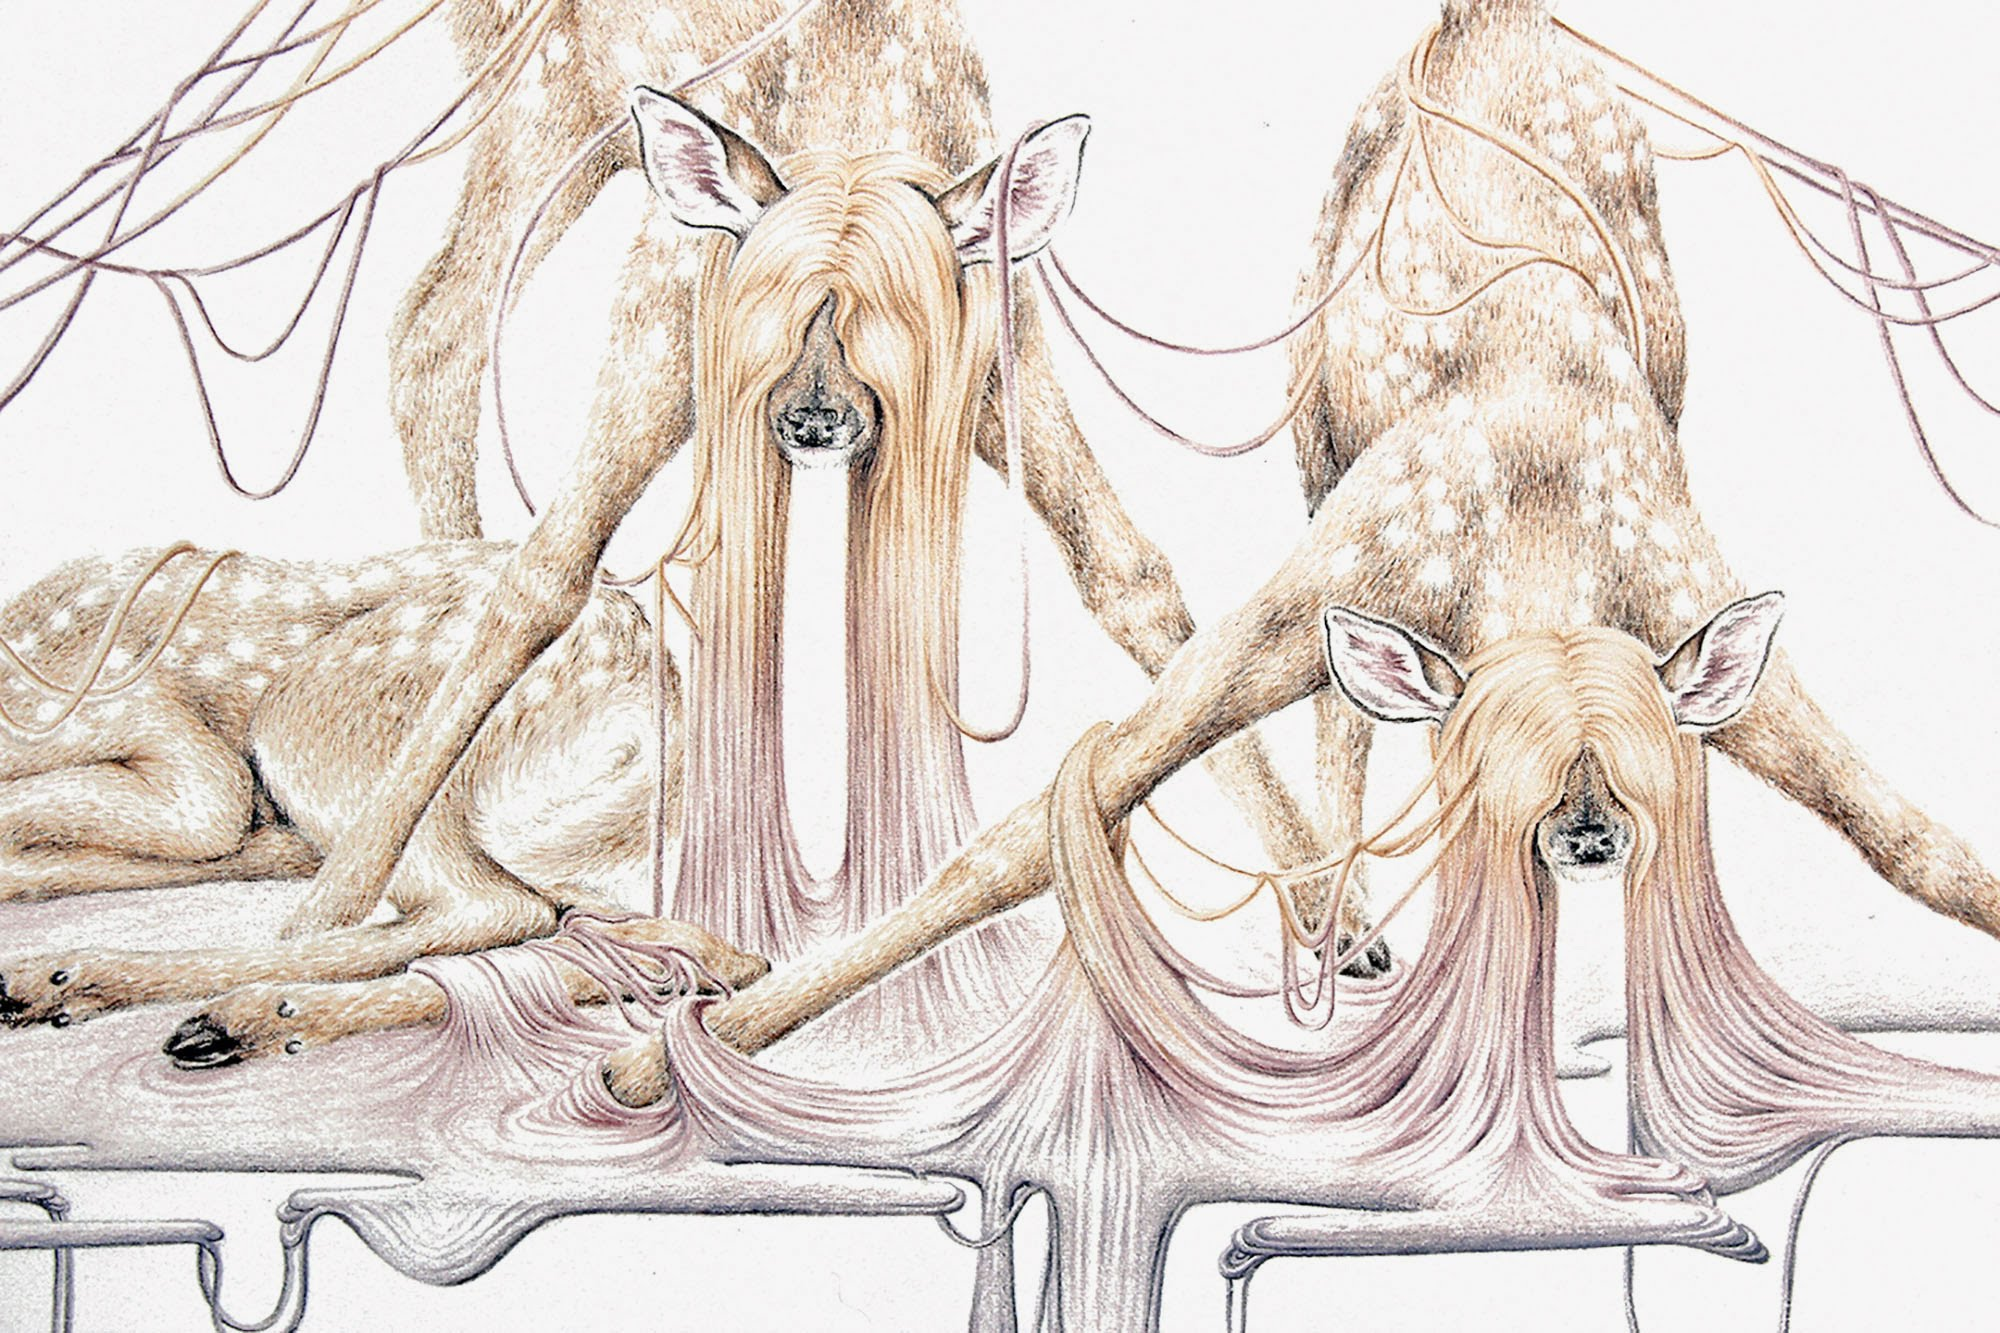 Detail drawing of fawns by Suzanne Head